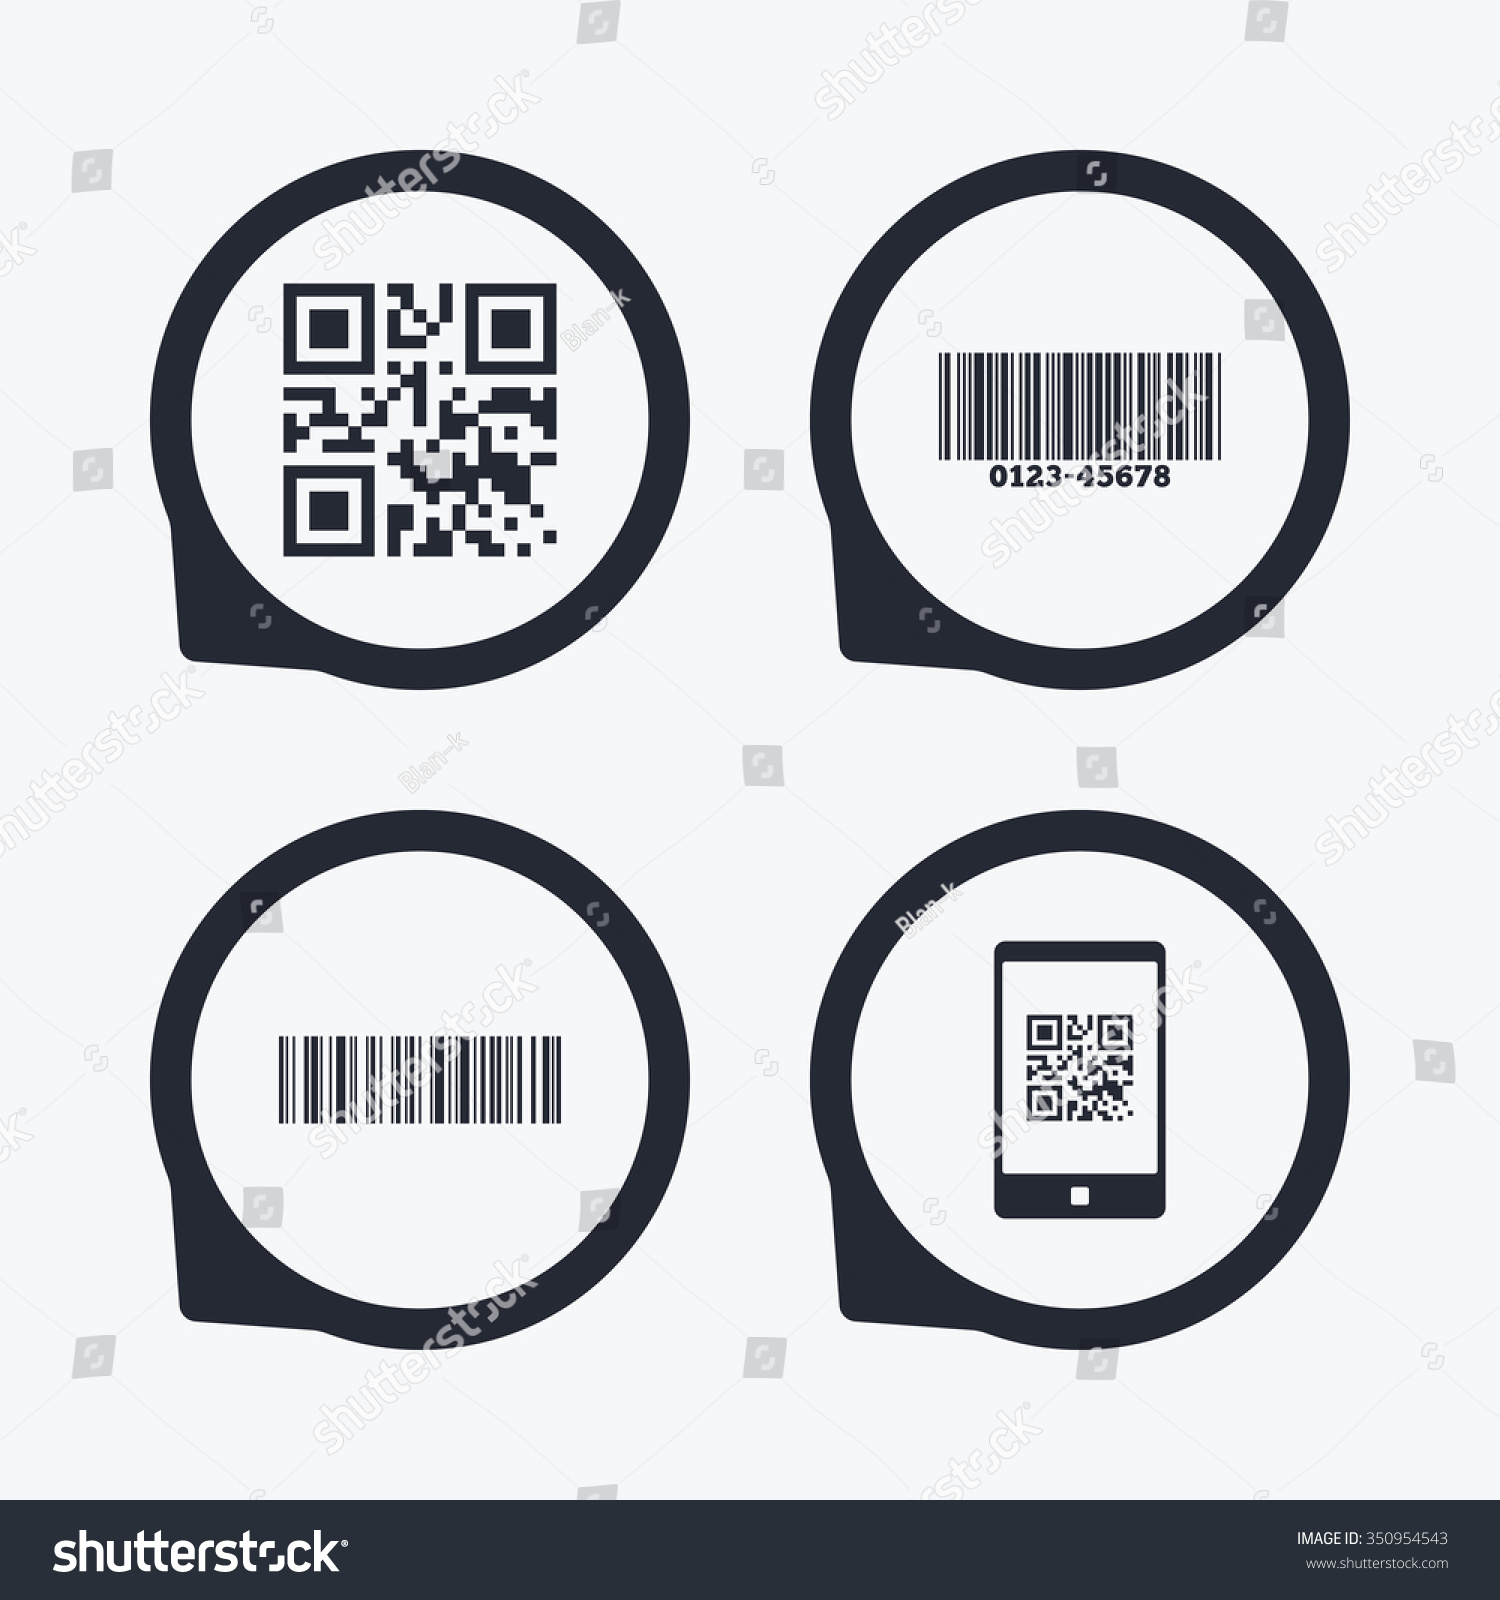 how to create a qr code for a website address